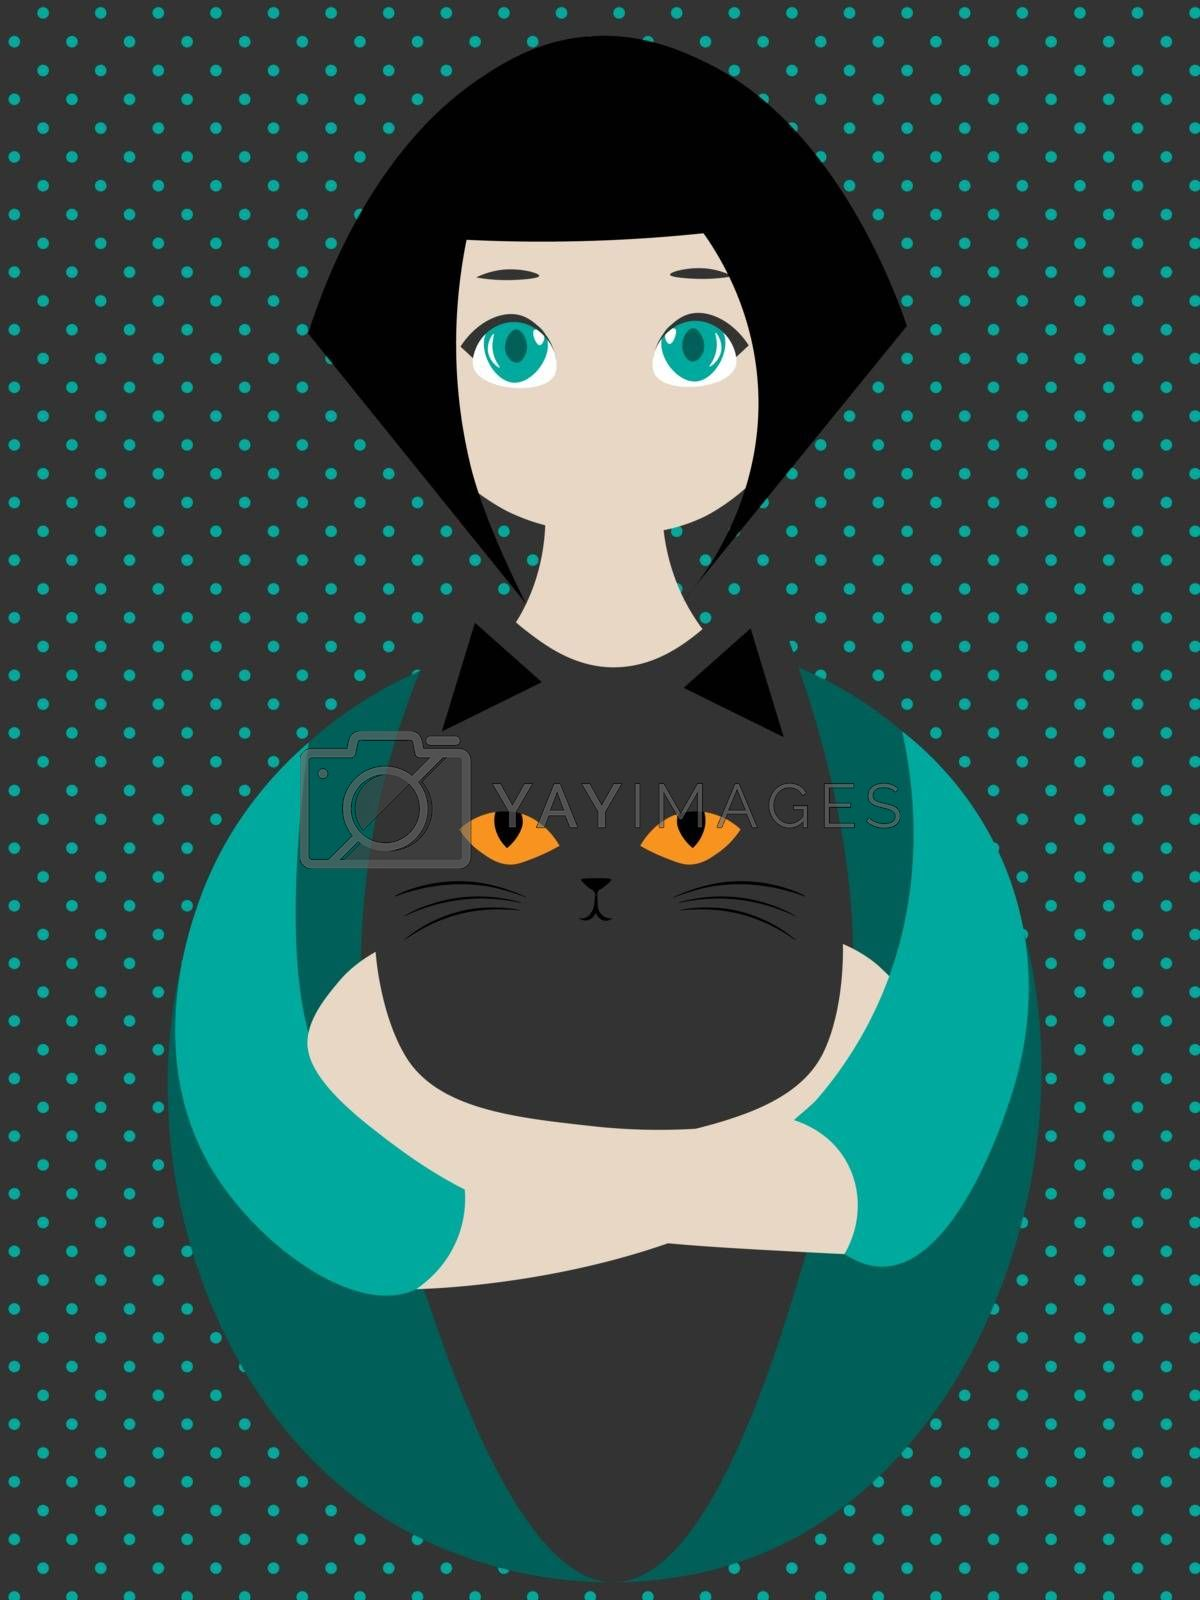 Cute and cozy illustration with brunette girl hugging a black cat with yellow eyes